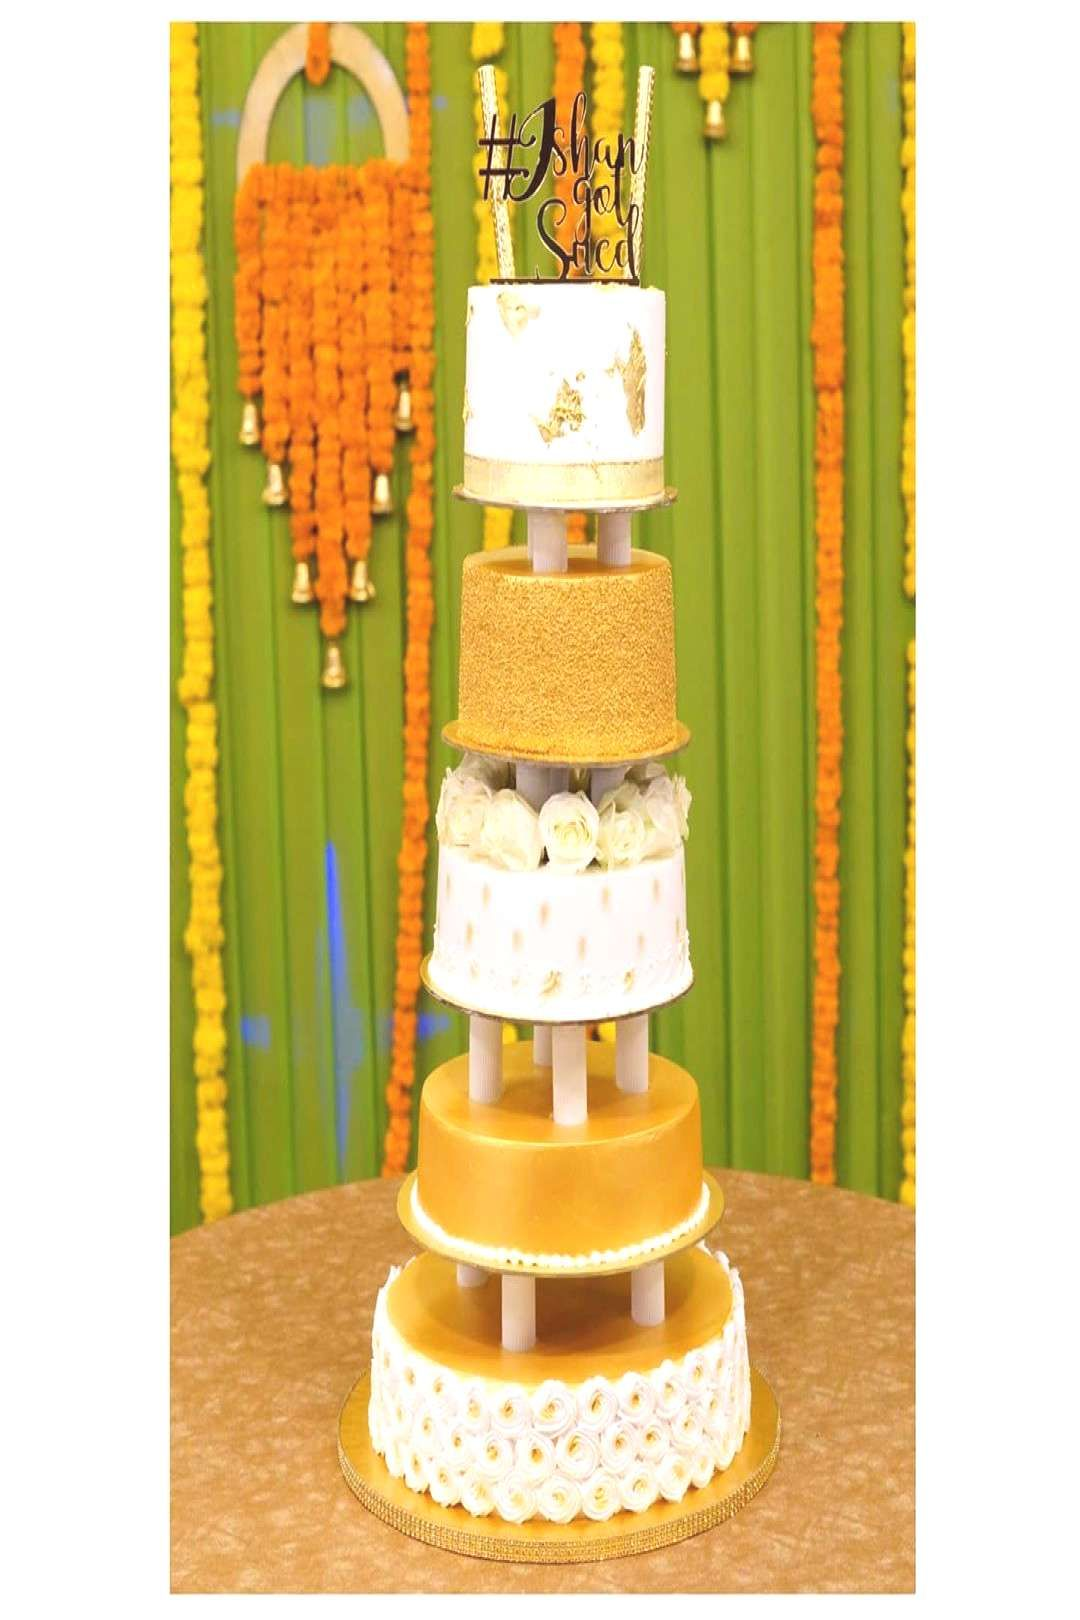 #golden #beauty #pillar #indoor #heres #white #tier #cake #made #our #in #a #5 #d Here's our beauty . A 5 tier golden white pillar cake made in 5 dYou can find Wedding cakes and more on our website.Here's our beauty . A 5 tier gol...